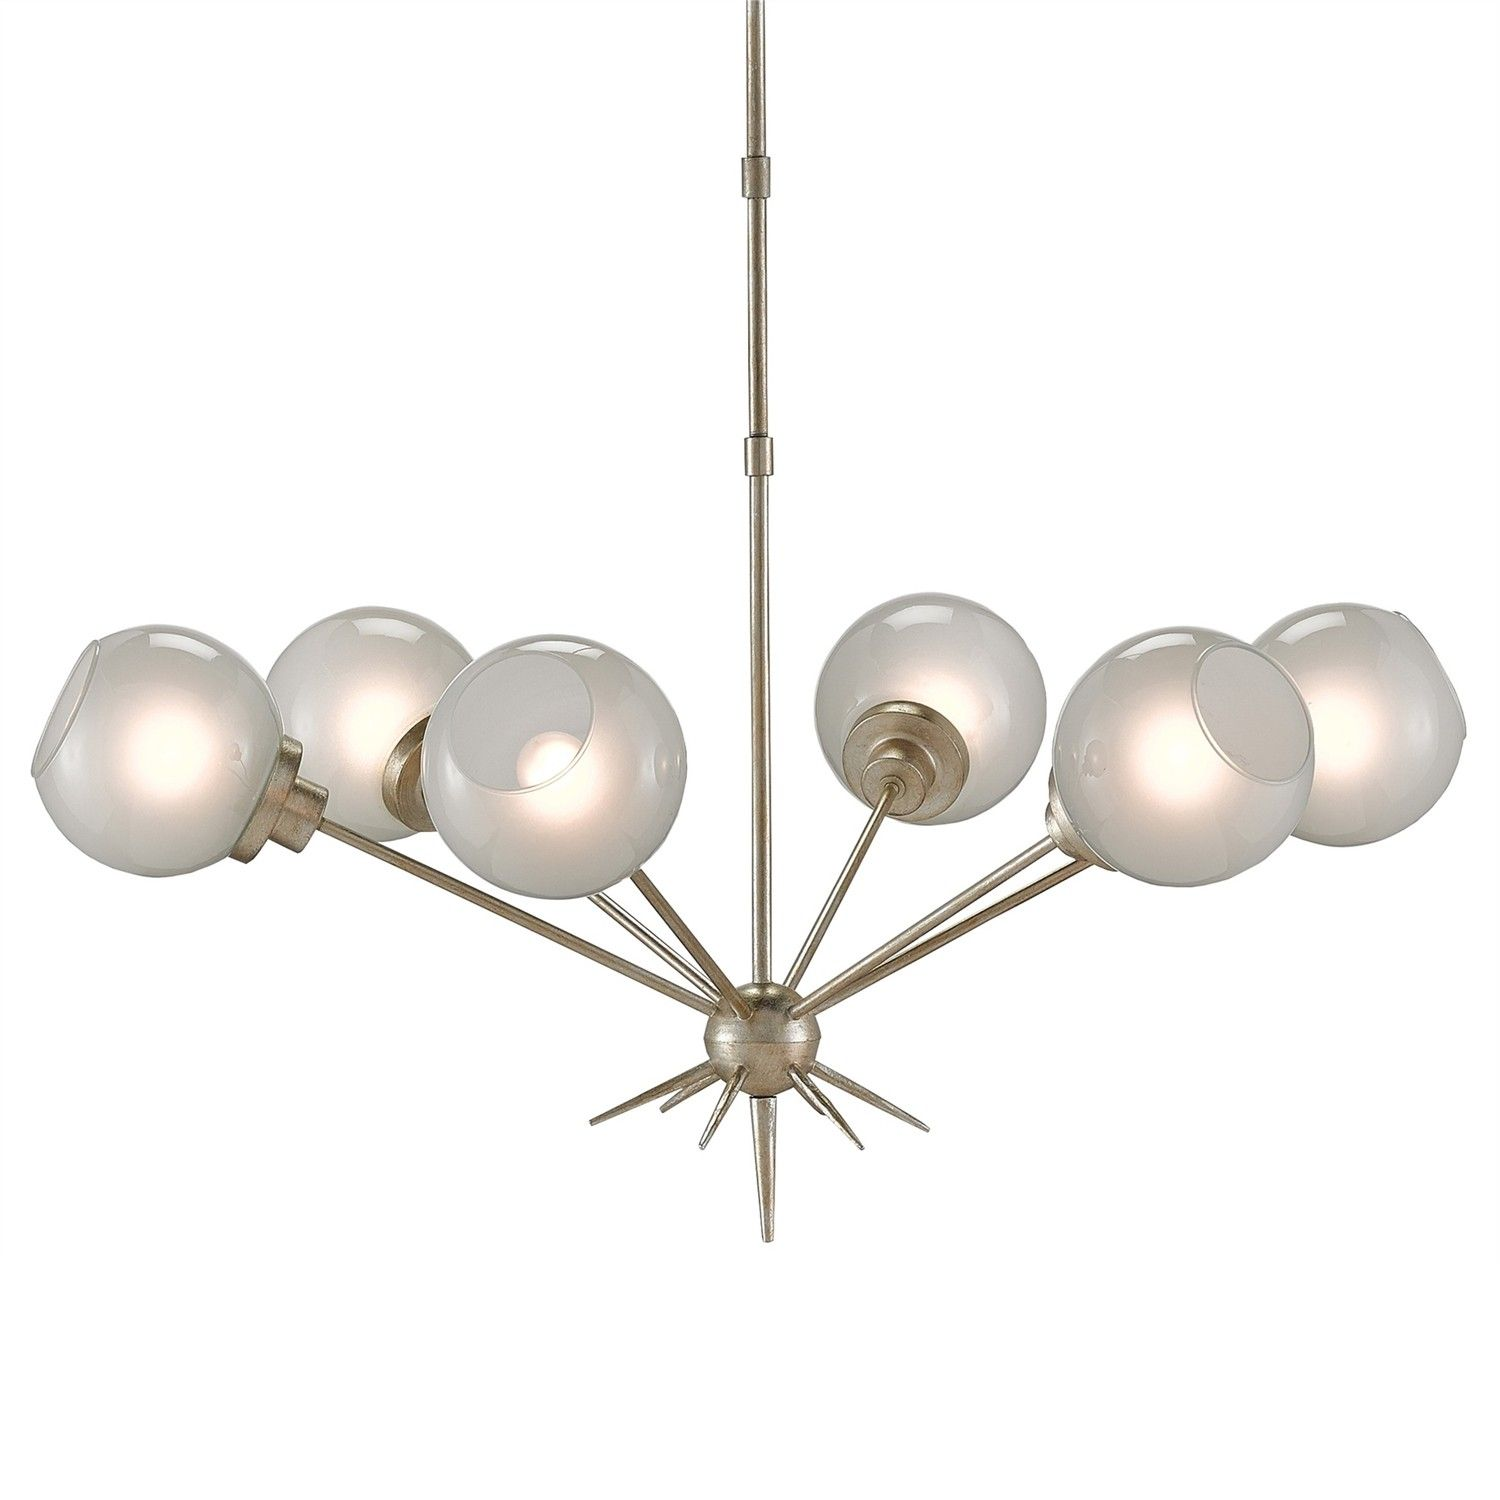 Featuring a Silver Leaf finish the Shelly Chandelier is chic and